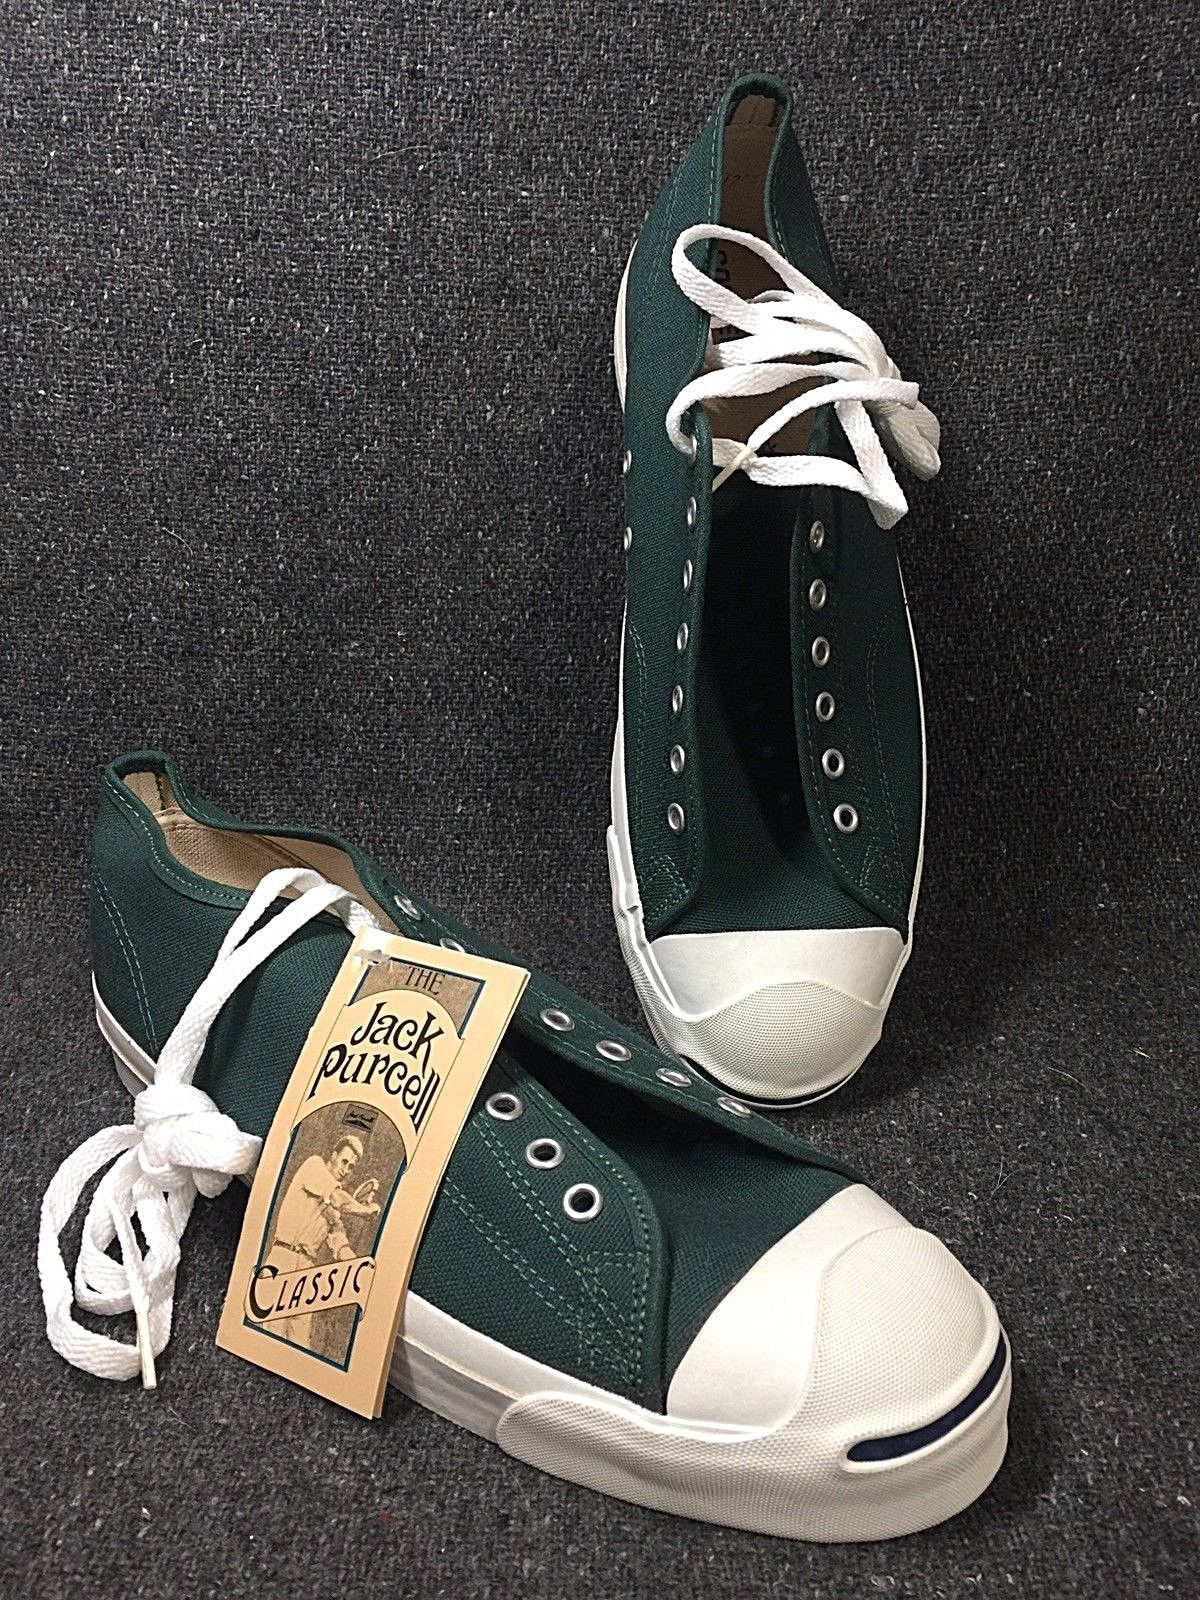 9c7f68d9ed7041 Details about Vintage Converse Jack Purcell 70 s 80 s AUTHENTIC MADE ...